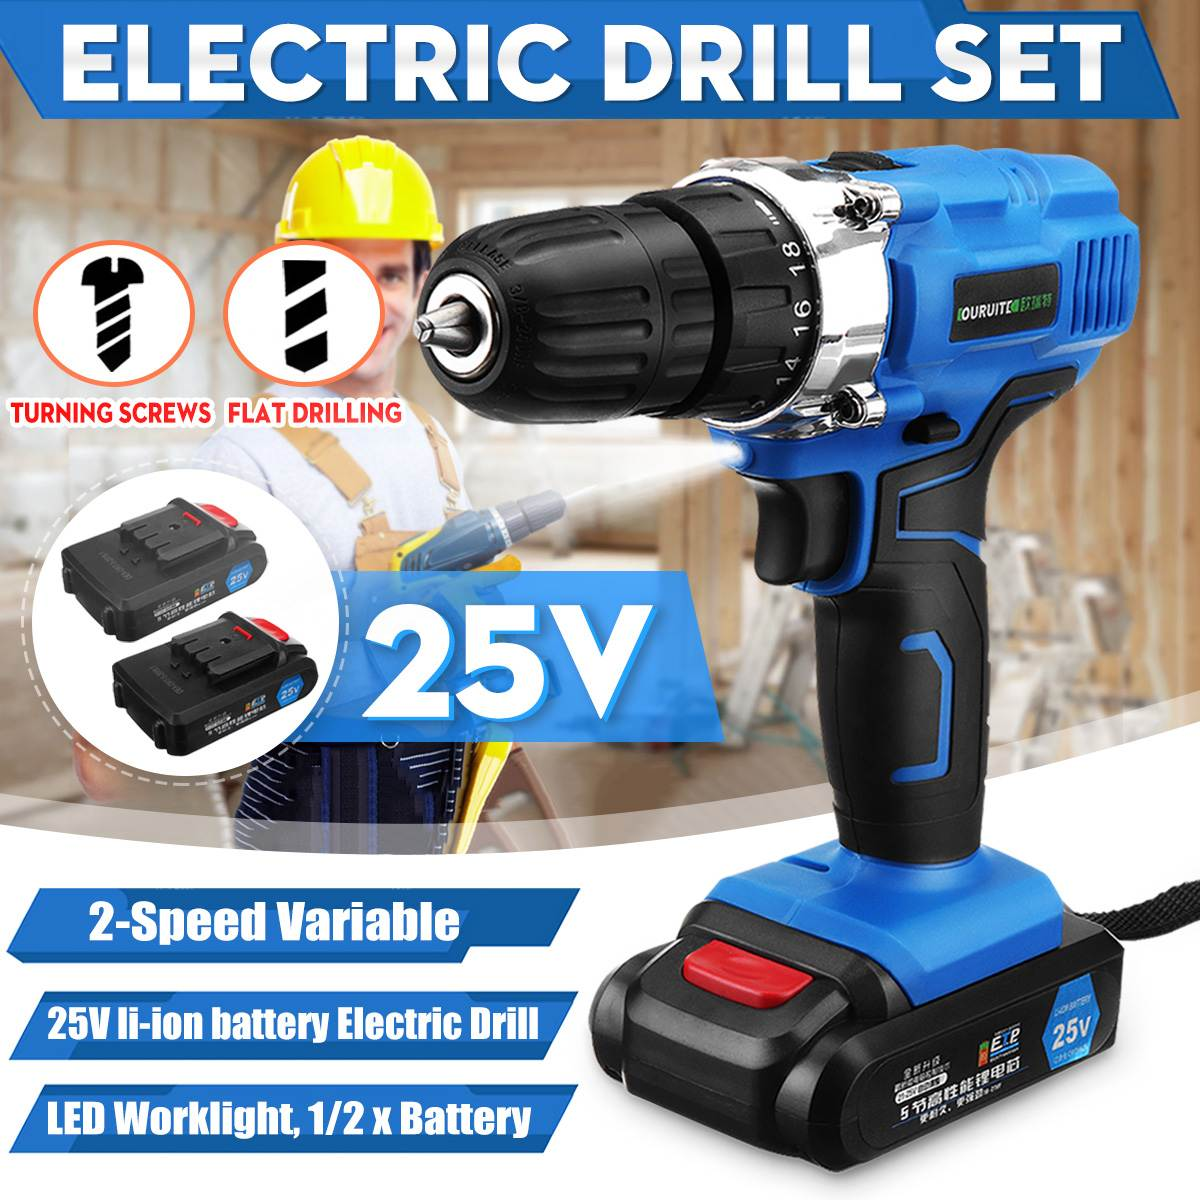 25V 35Nm 5000Mah Cordless Electric Drill 18-Speed Torque Double Speed Rechargeable Brushless25V 35Nm 5000Mah Cordless Electric Drill 18-Speed Torque Double Speed Rechargeable Brushless